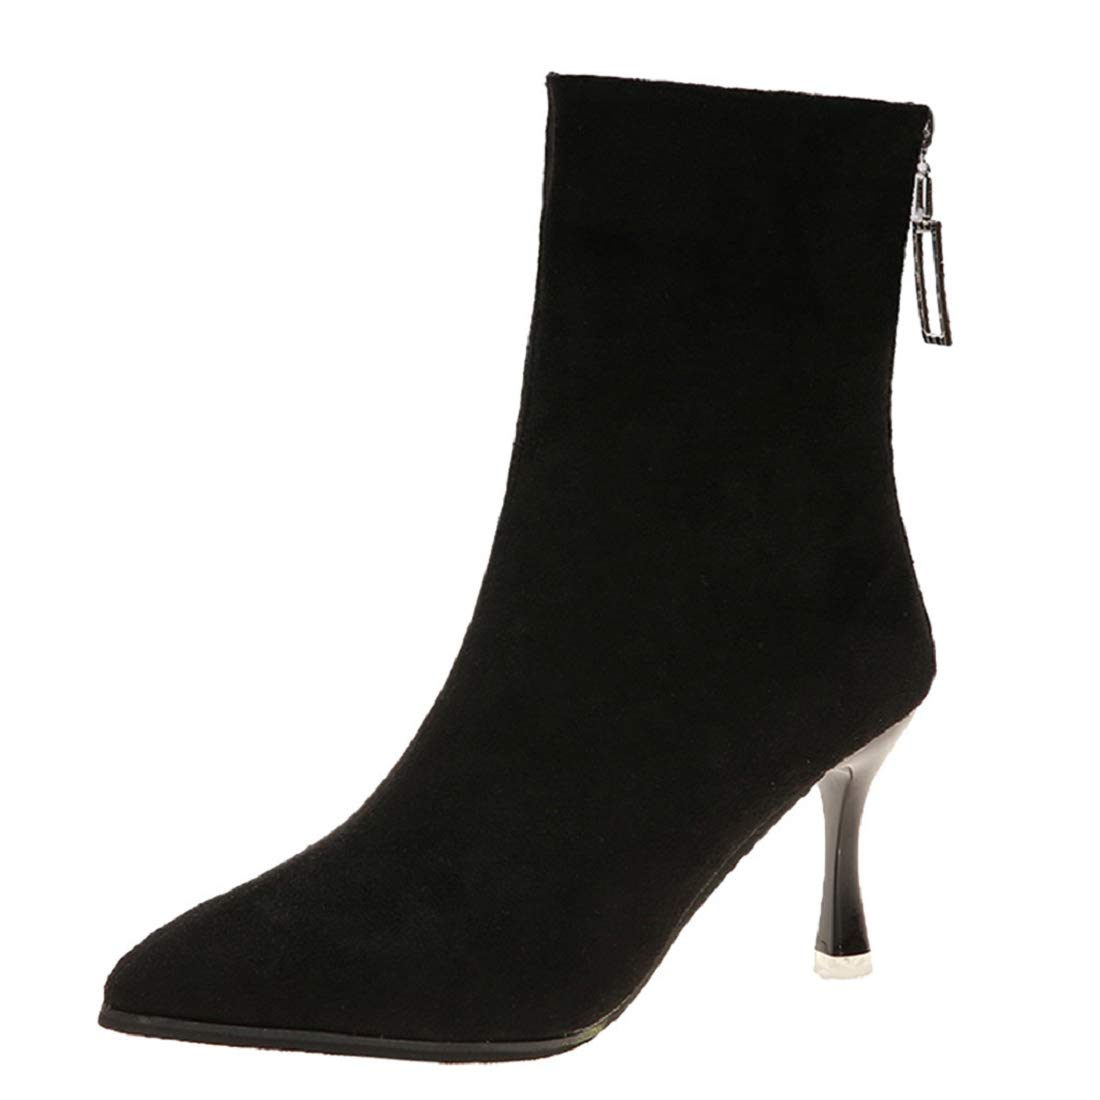 Womens Side Zipper Suede High Heel Ankle Booties Pointed Toe Thin Heels Short Boots Shoes for Women